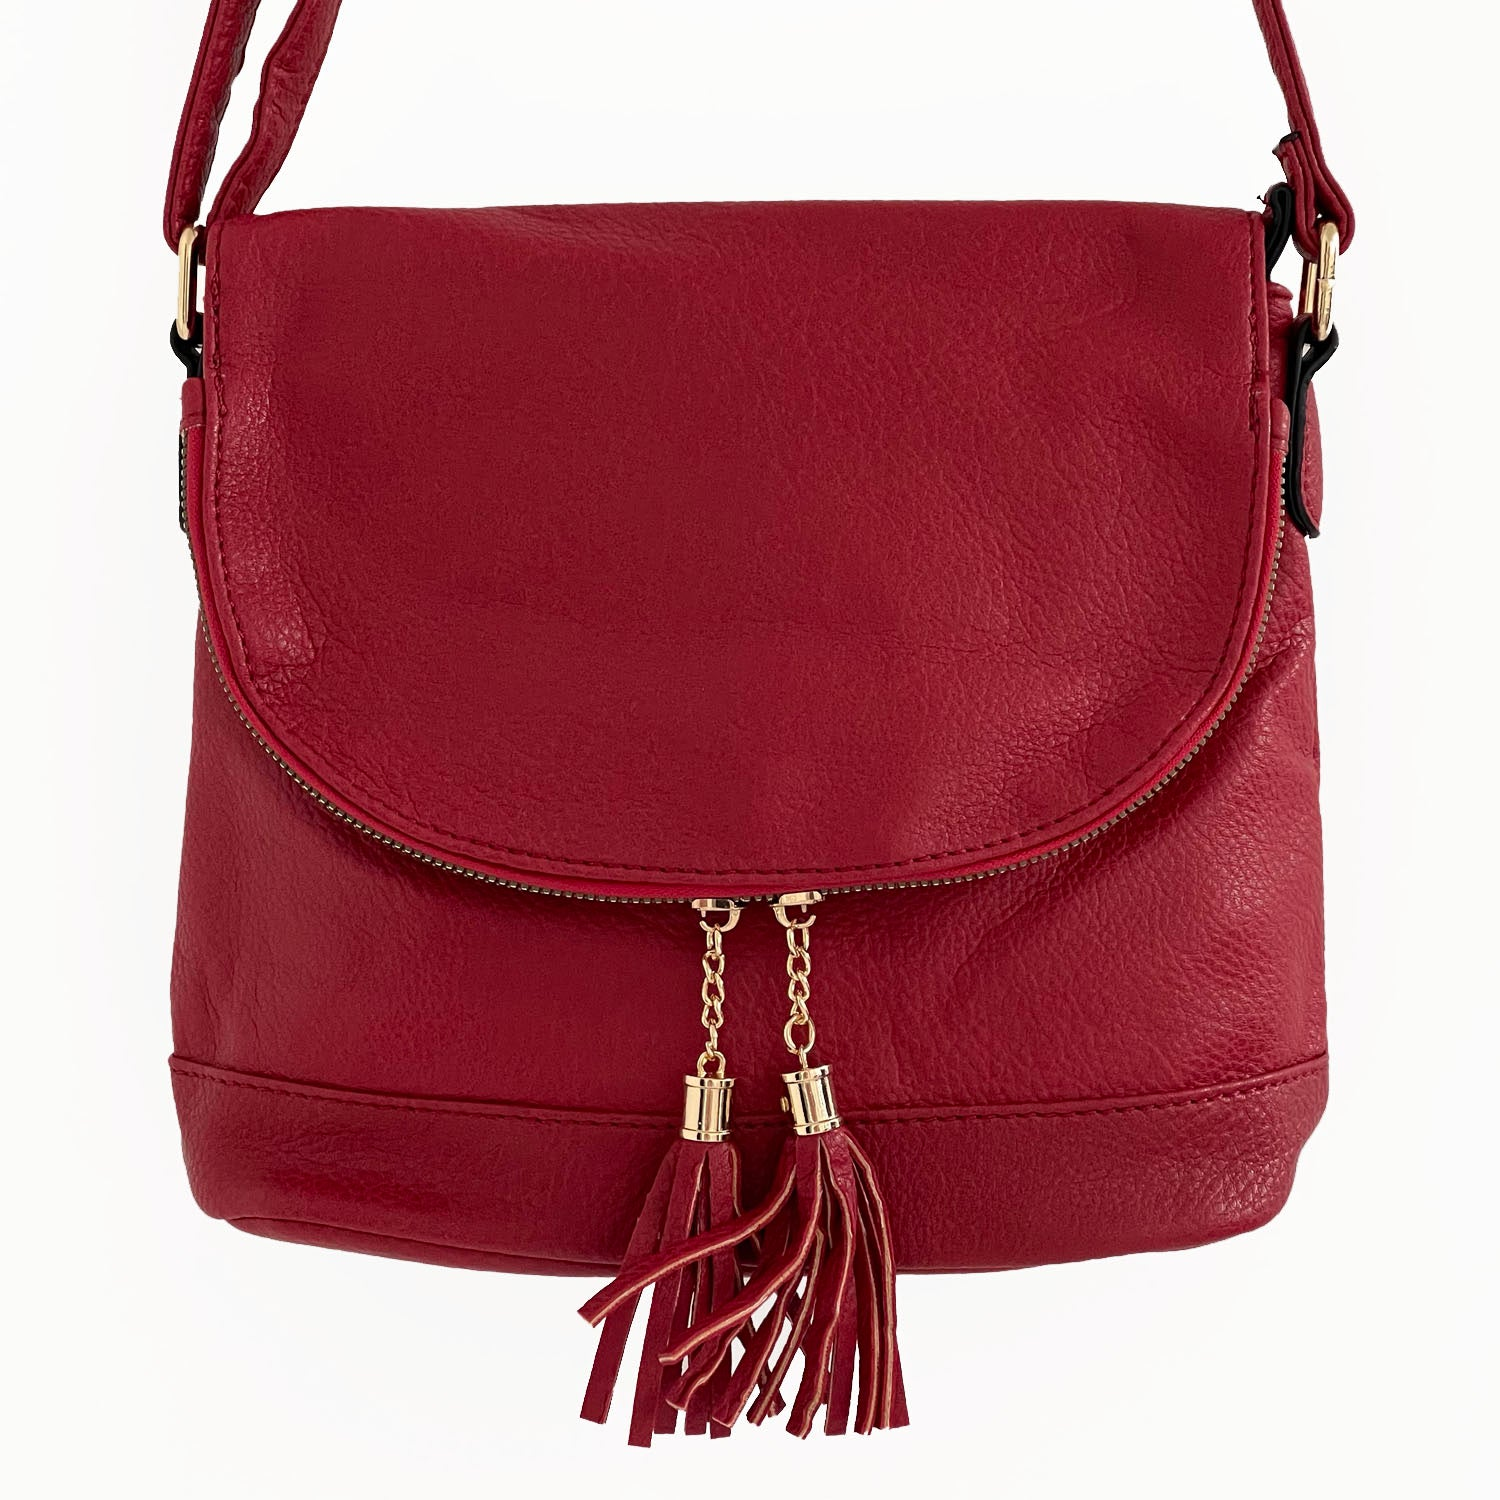 LARGE RED TASSEL MULTI COMPARTMENT CROSS BODY SHOULDER BAG WITH LONG STRAP